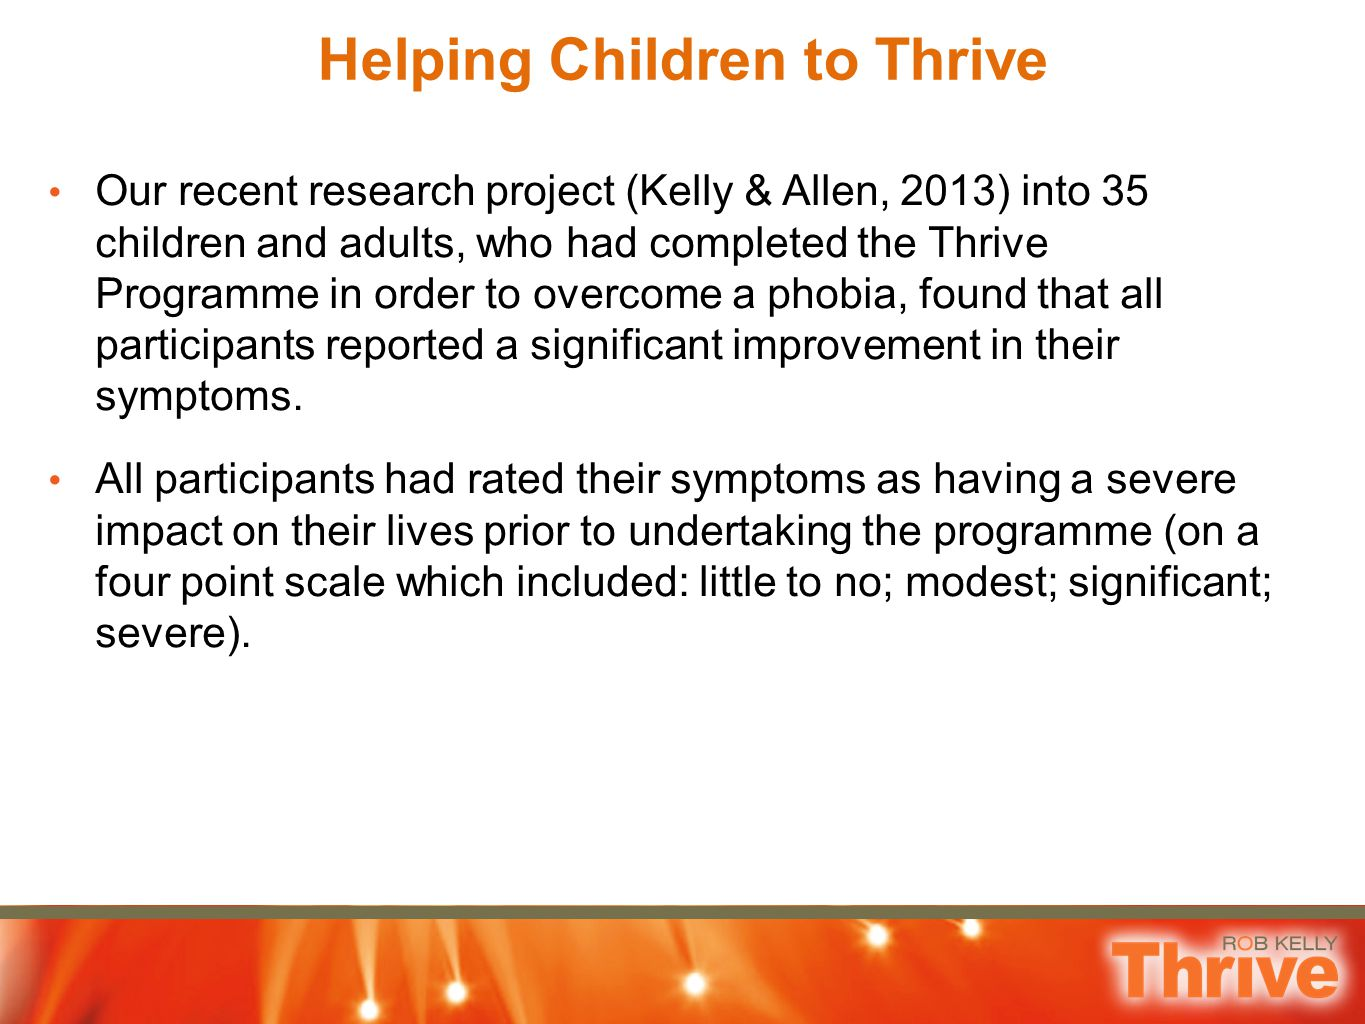 Helping Children to Thrive Our recent research project (Kelly & Allen, 2013) into 35 children and adults, who had completed the Thrive Programme in order to overcome a phobia, found that all participants reported a significant improvement in their symptoms.